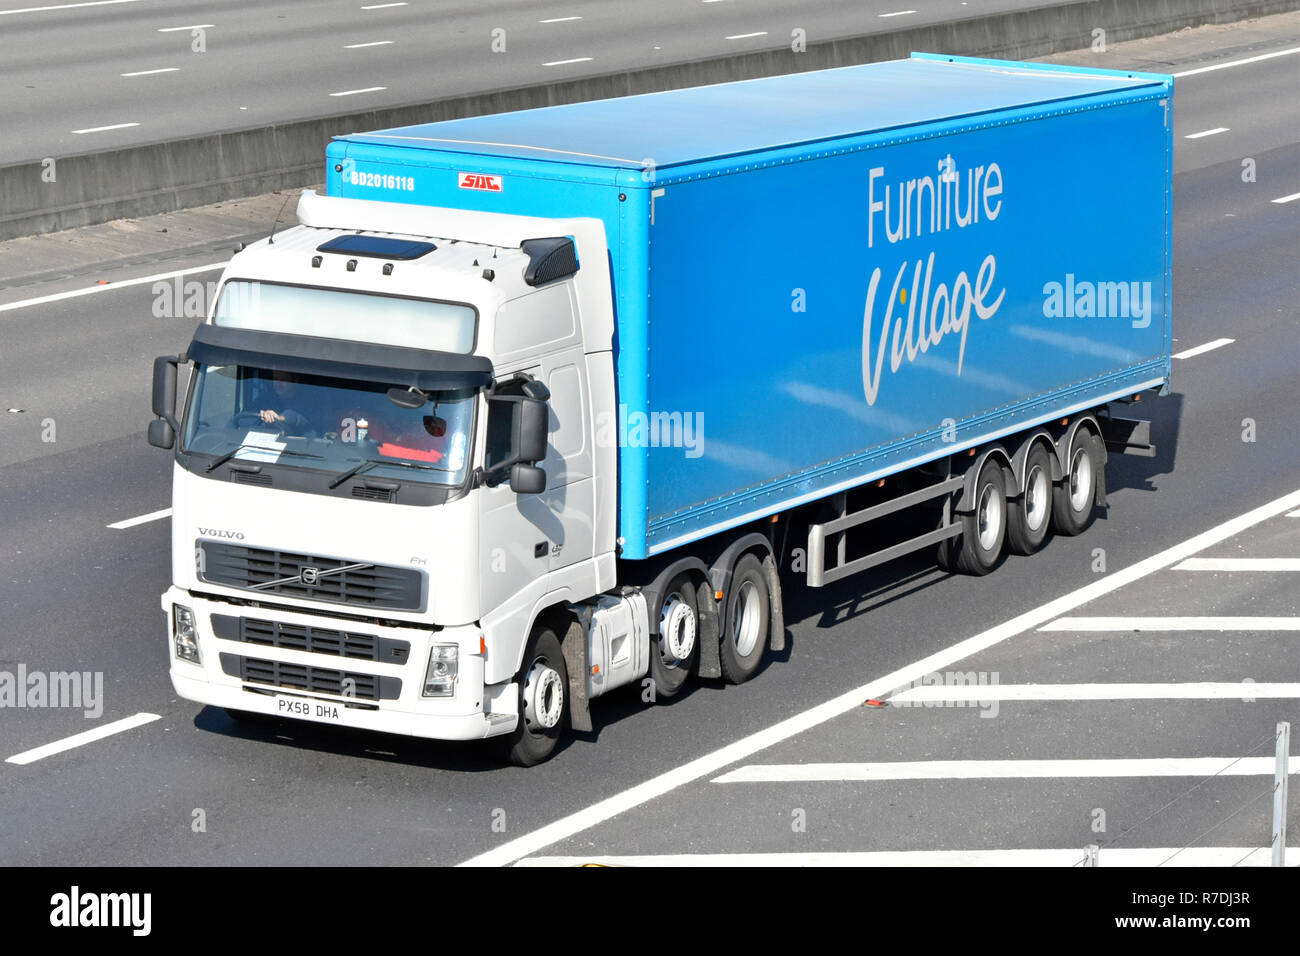 White hgv juggernaut lorry truck driver & blue Furniture Village articulated supply chain transportation trailer driving along motorway England UK - Stock Image